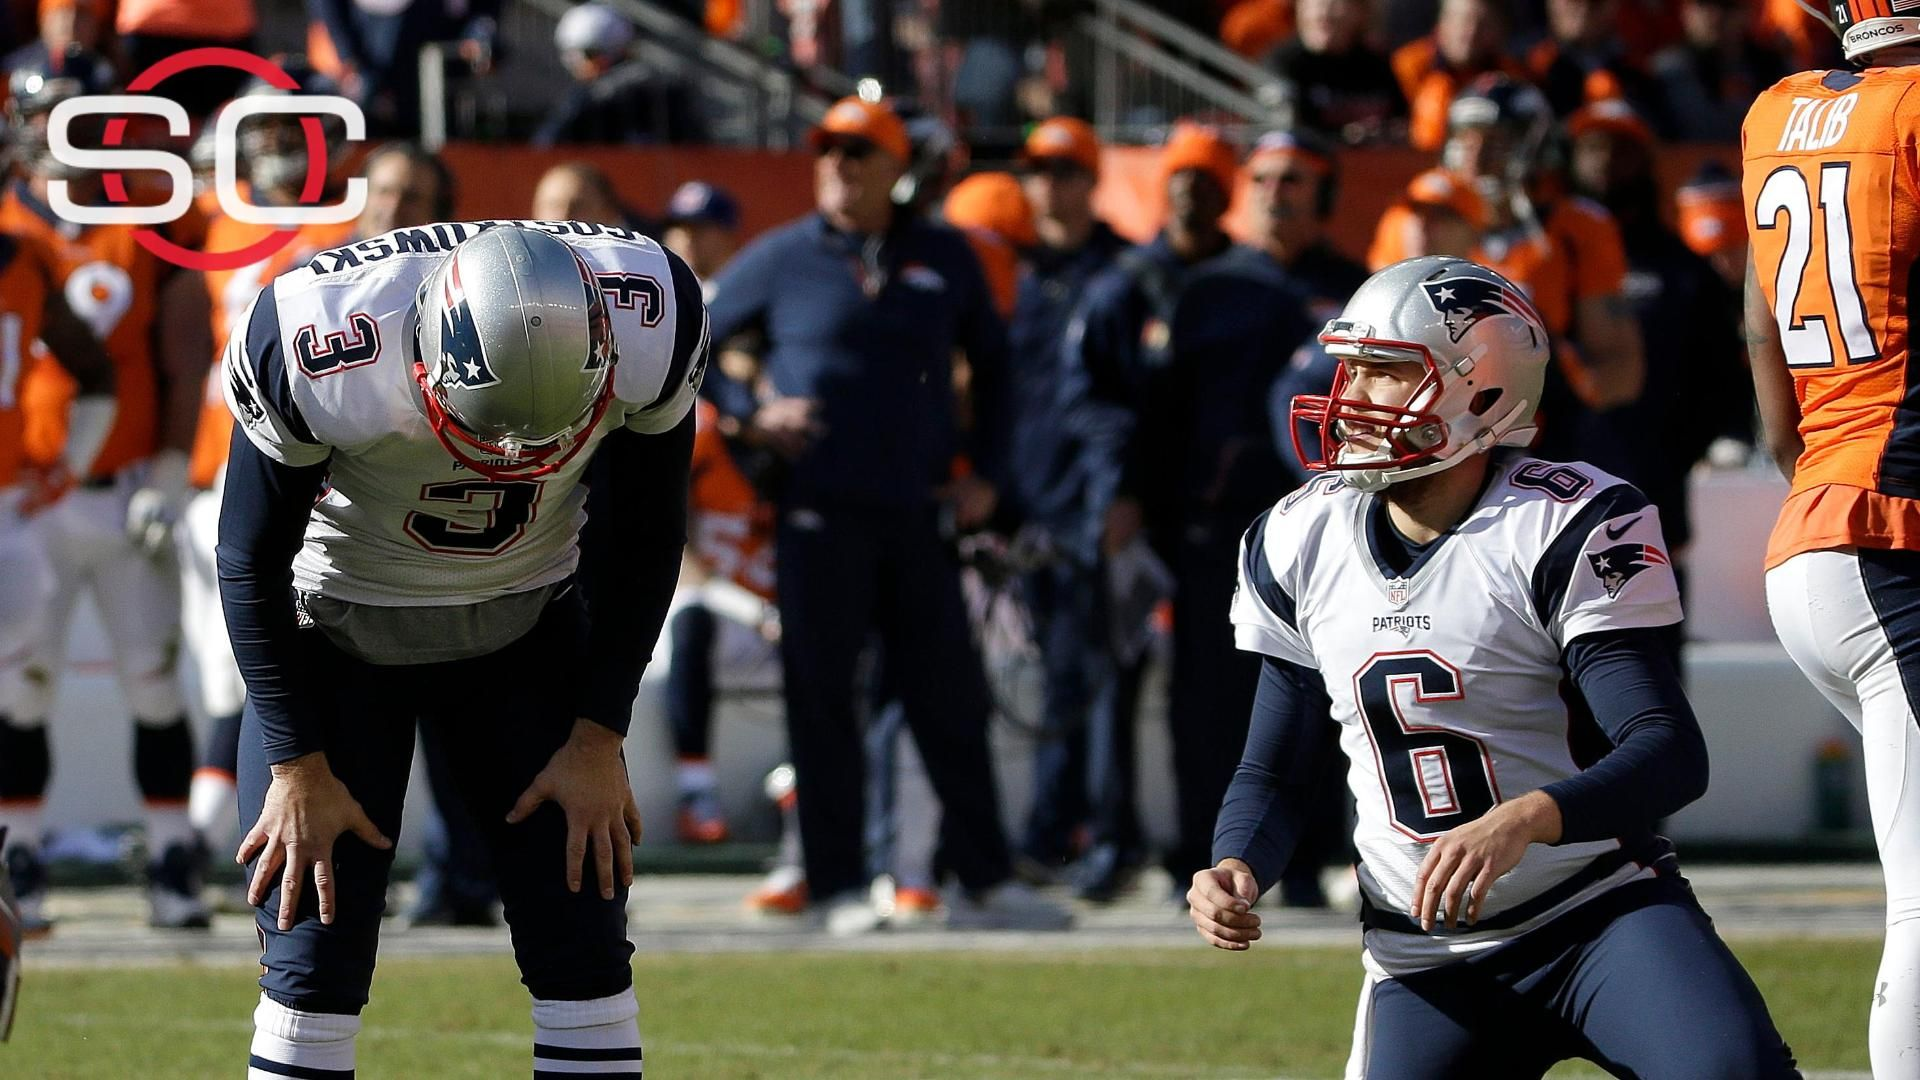 Gostkowski's missed PAT proves to be significant